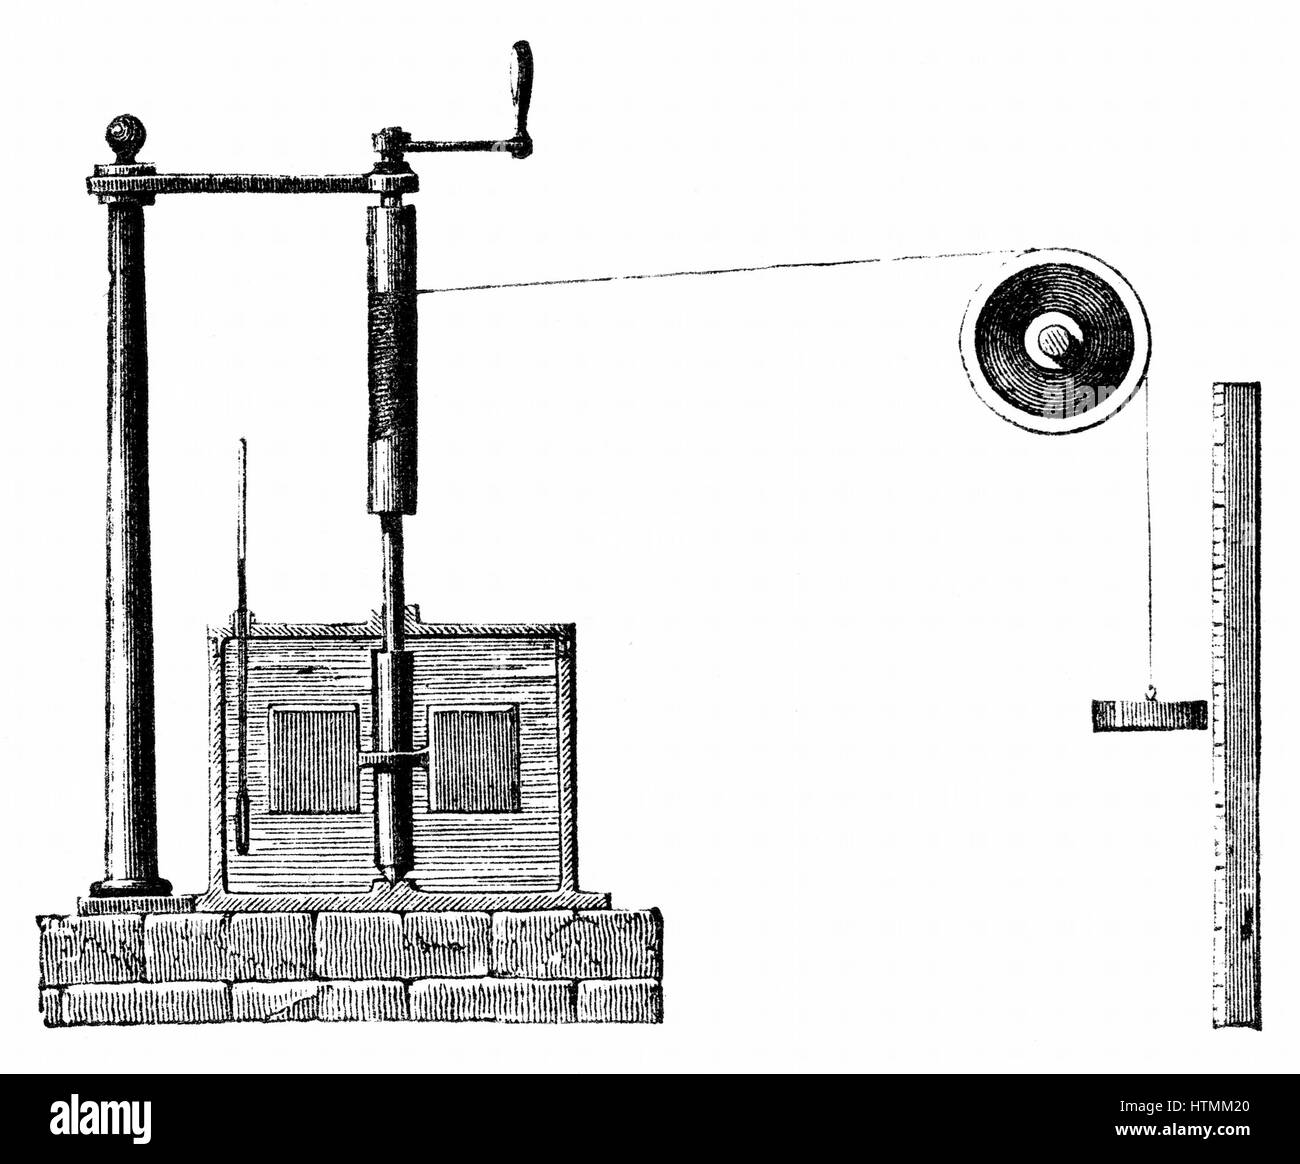 James Prescott Joule's (1818-89) apparatus for determining mechanical equivalent of heat. Vessel of water, oil - Stock Image